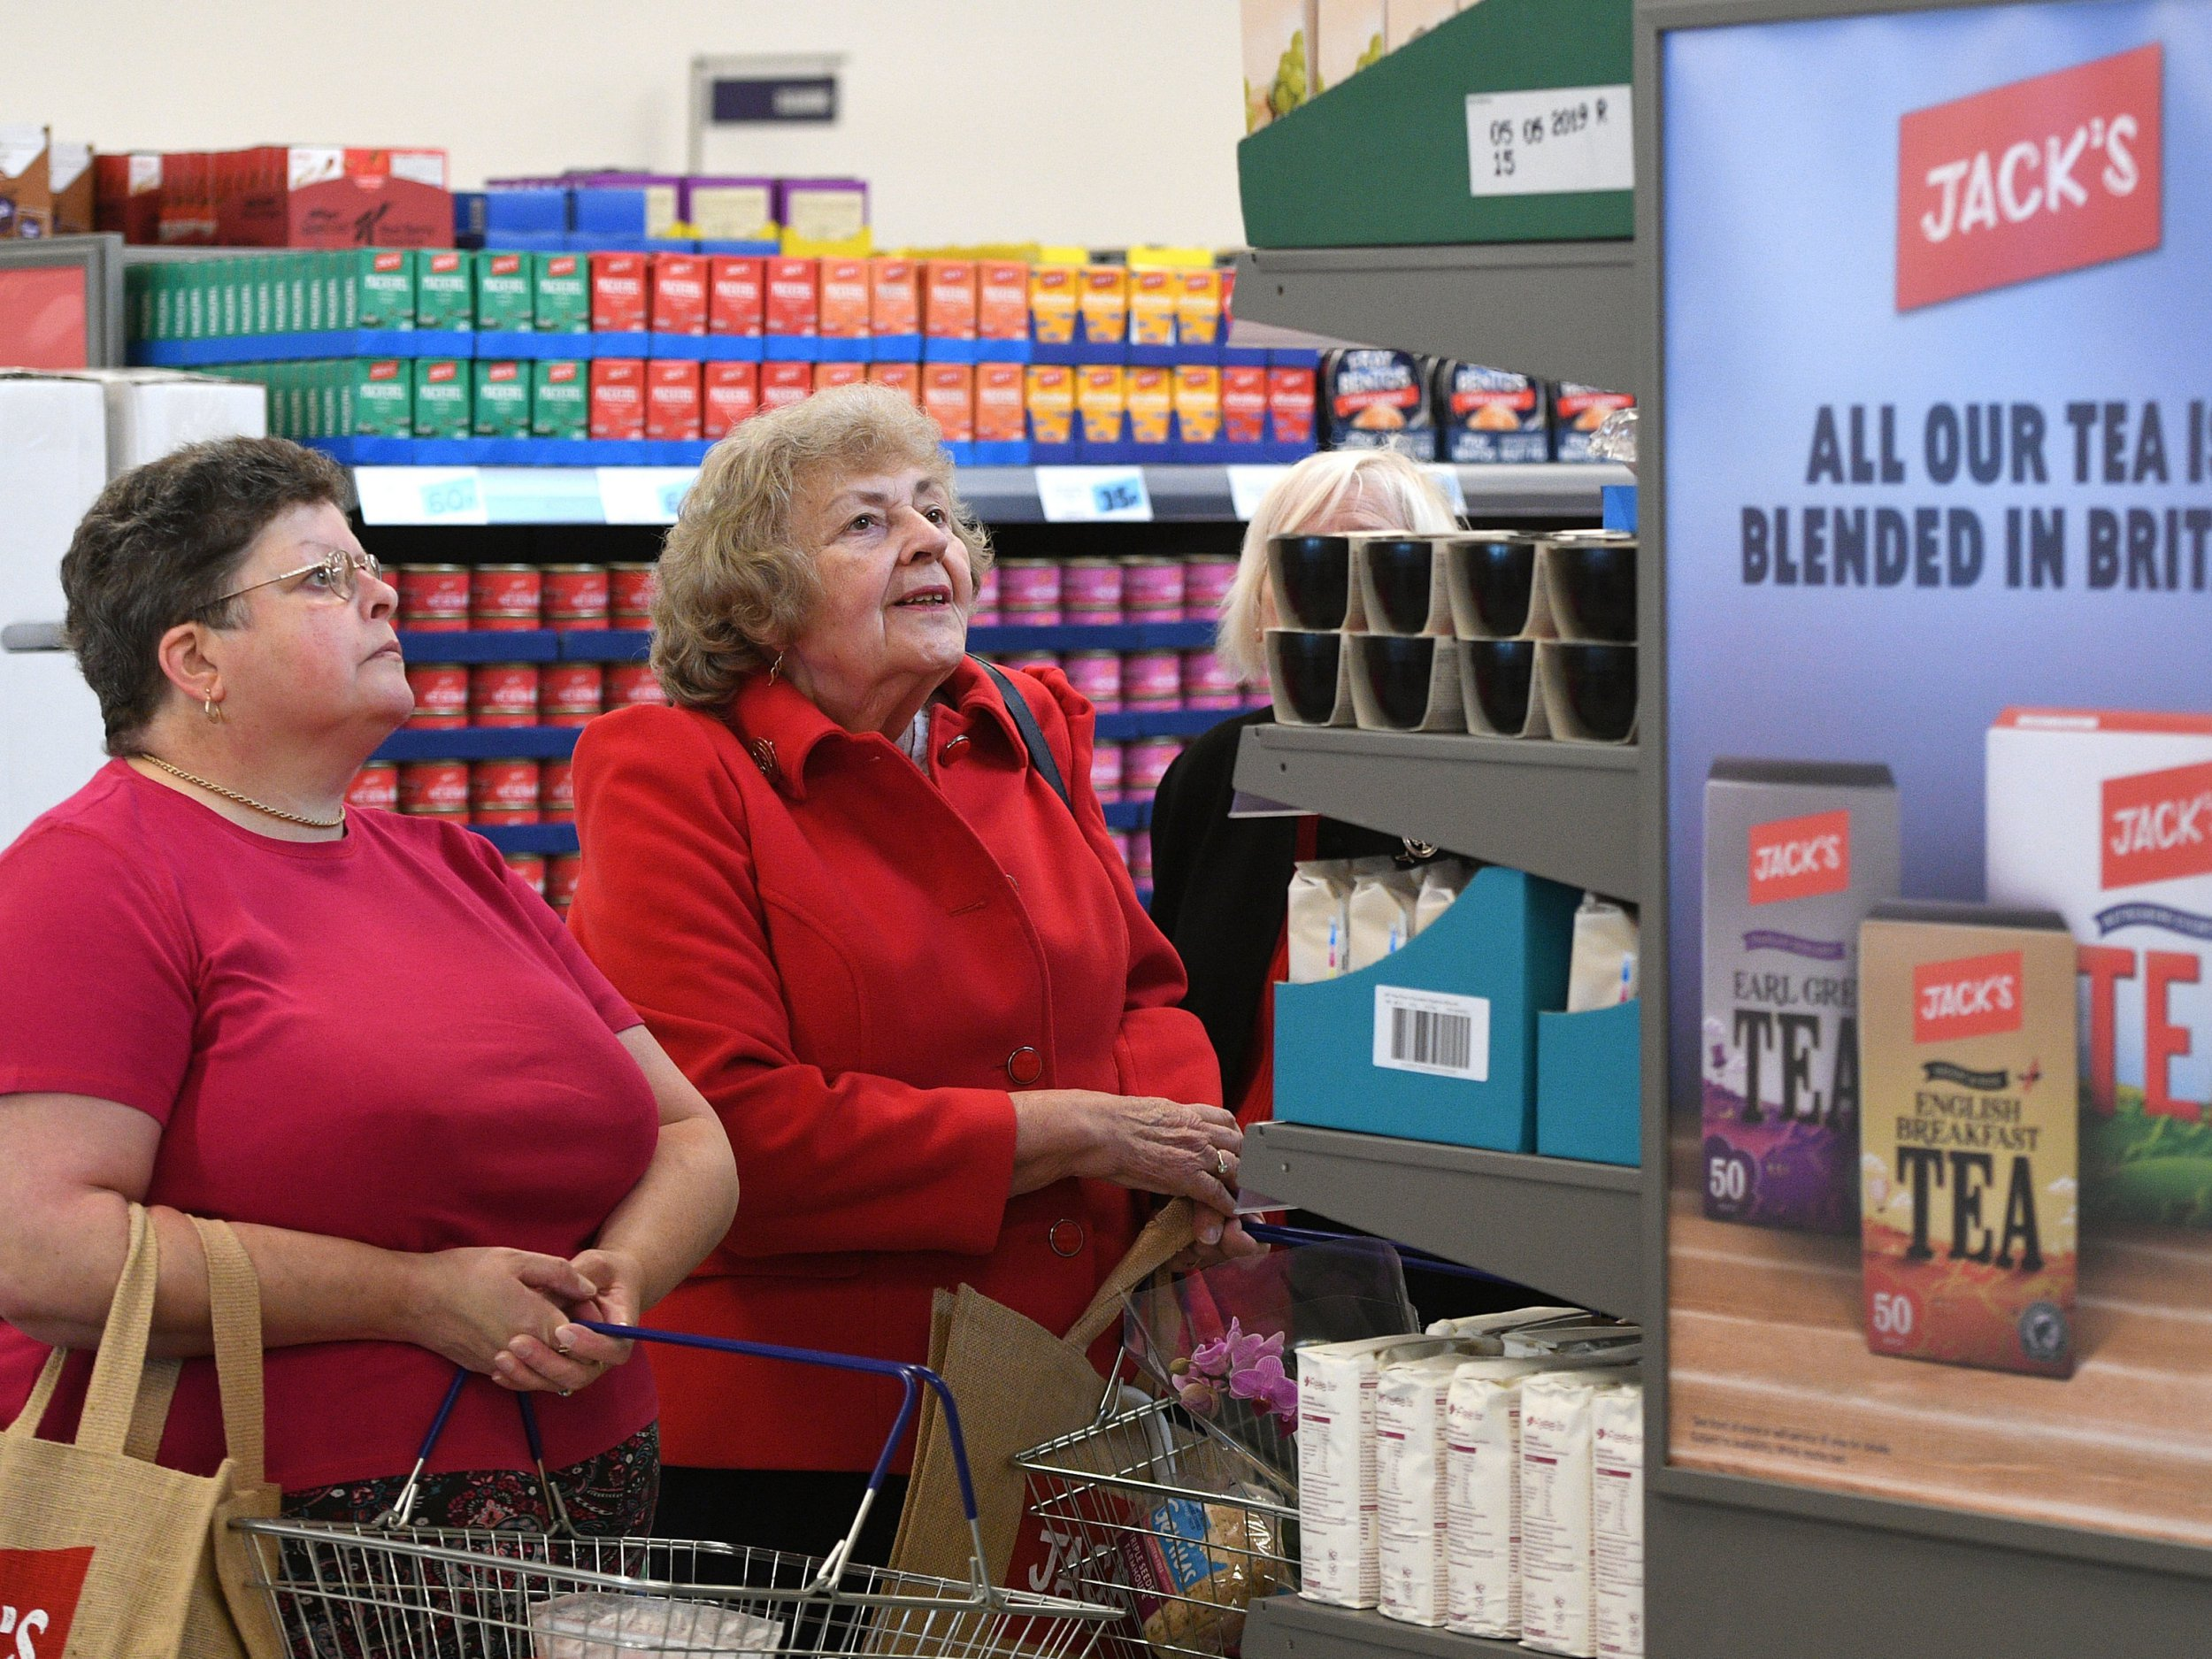 Customers shop in Tesco's new Jack's store in Chatteris, Cambridgeshire, as it opens to the public for the first time. PRESS ASSOCIATION Photo. Picture date: Thursday September 20, 2018. The UK's biggest retailer is to launch a chain of discount stores in Britain called Jack's, after Jack Cohen, who founded a business in 1919 that became Tesco. See PA story CONSUMER Jacks. Photo credit should read: Joe Giddens/PA Wire